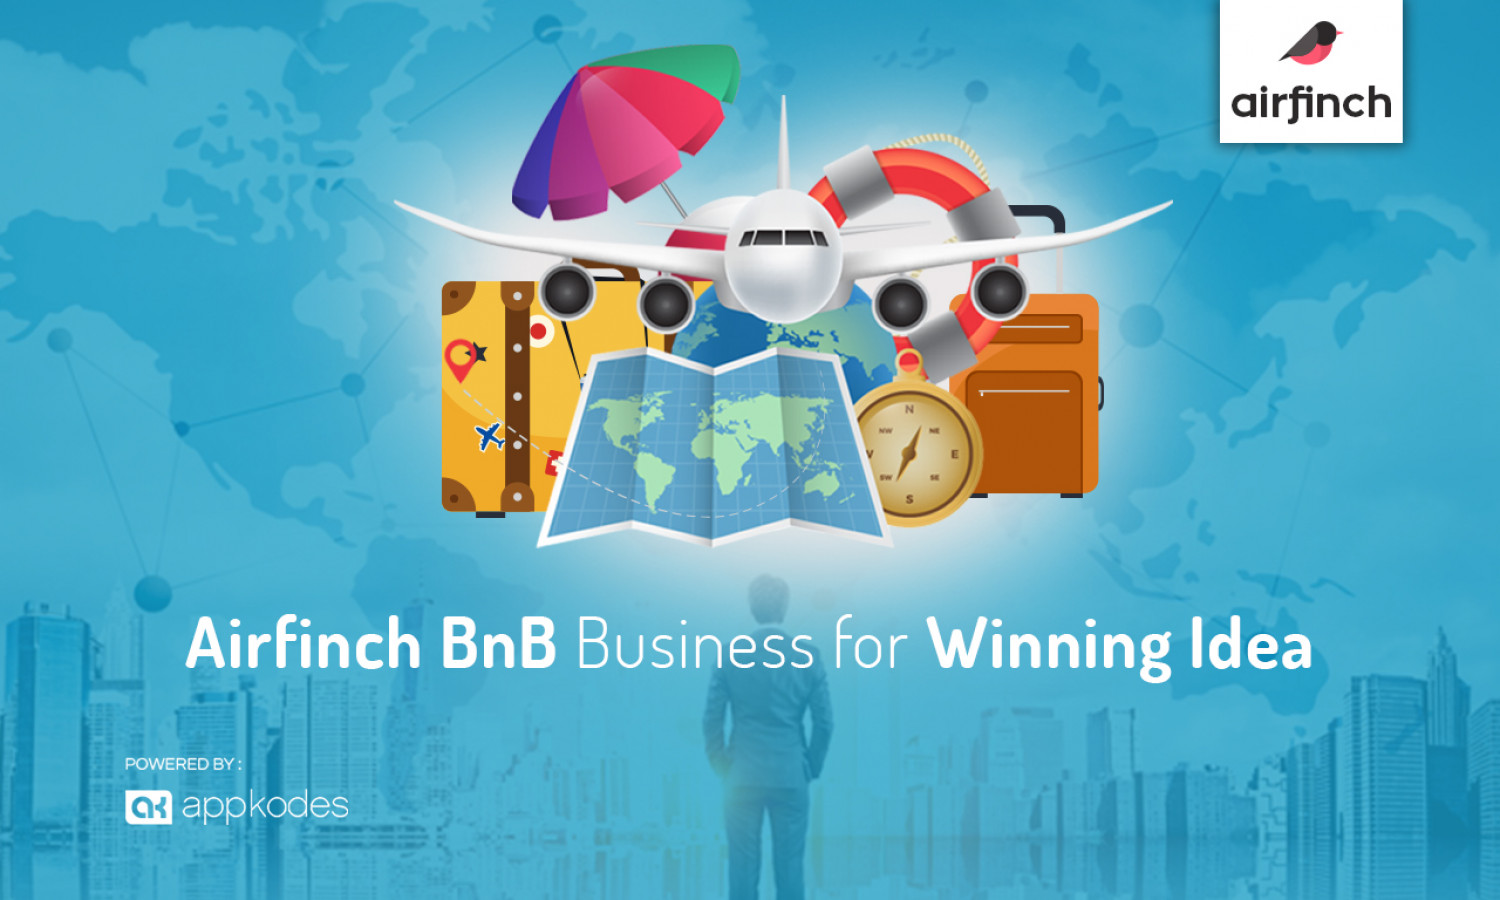 Airfinch BnB Business for Winning Idea Infographic